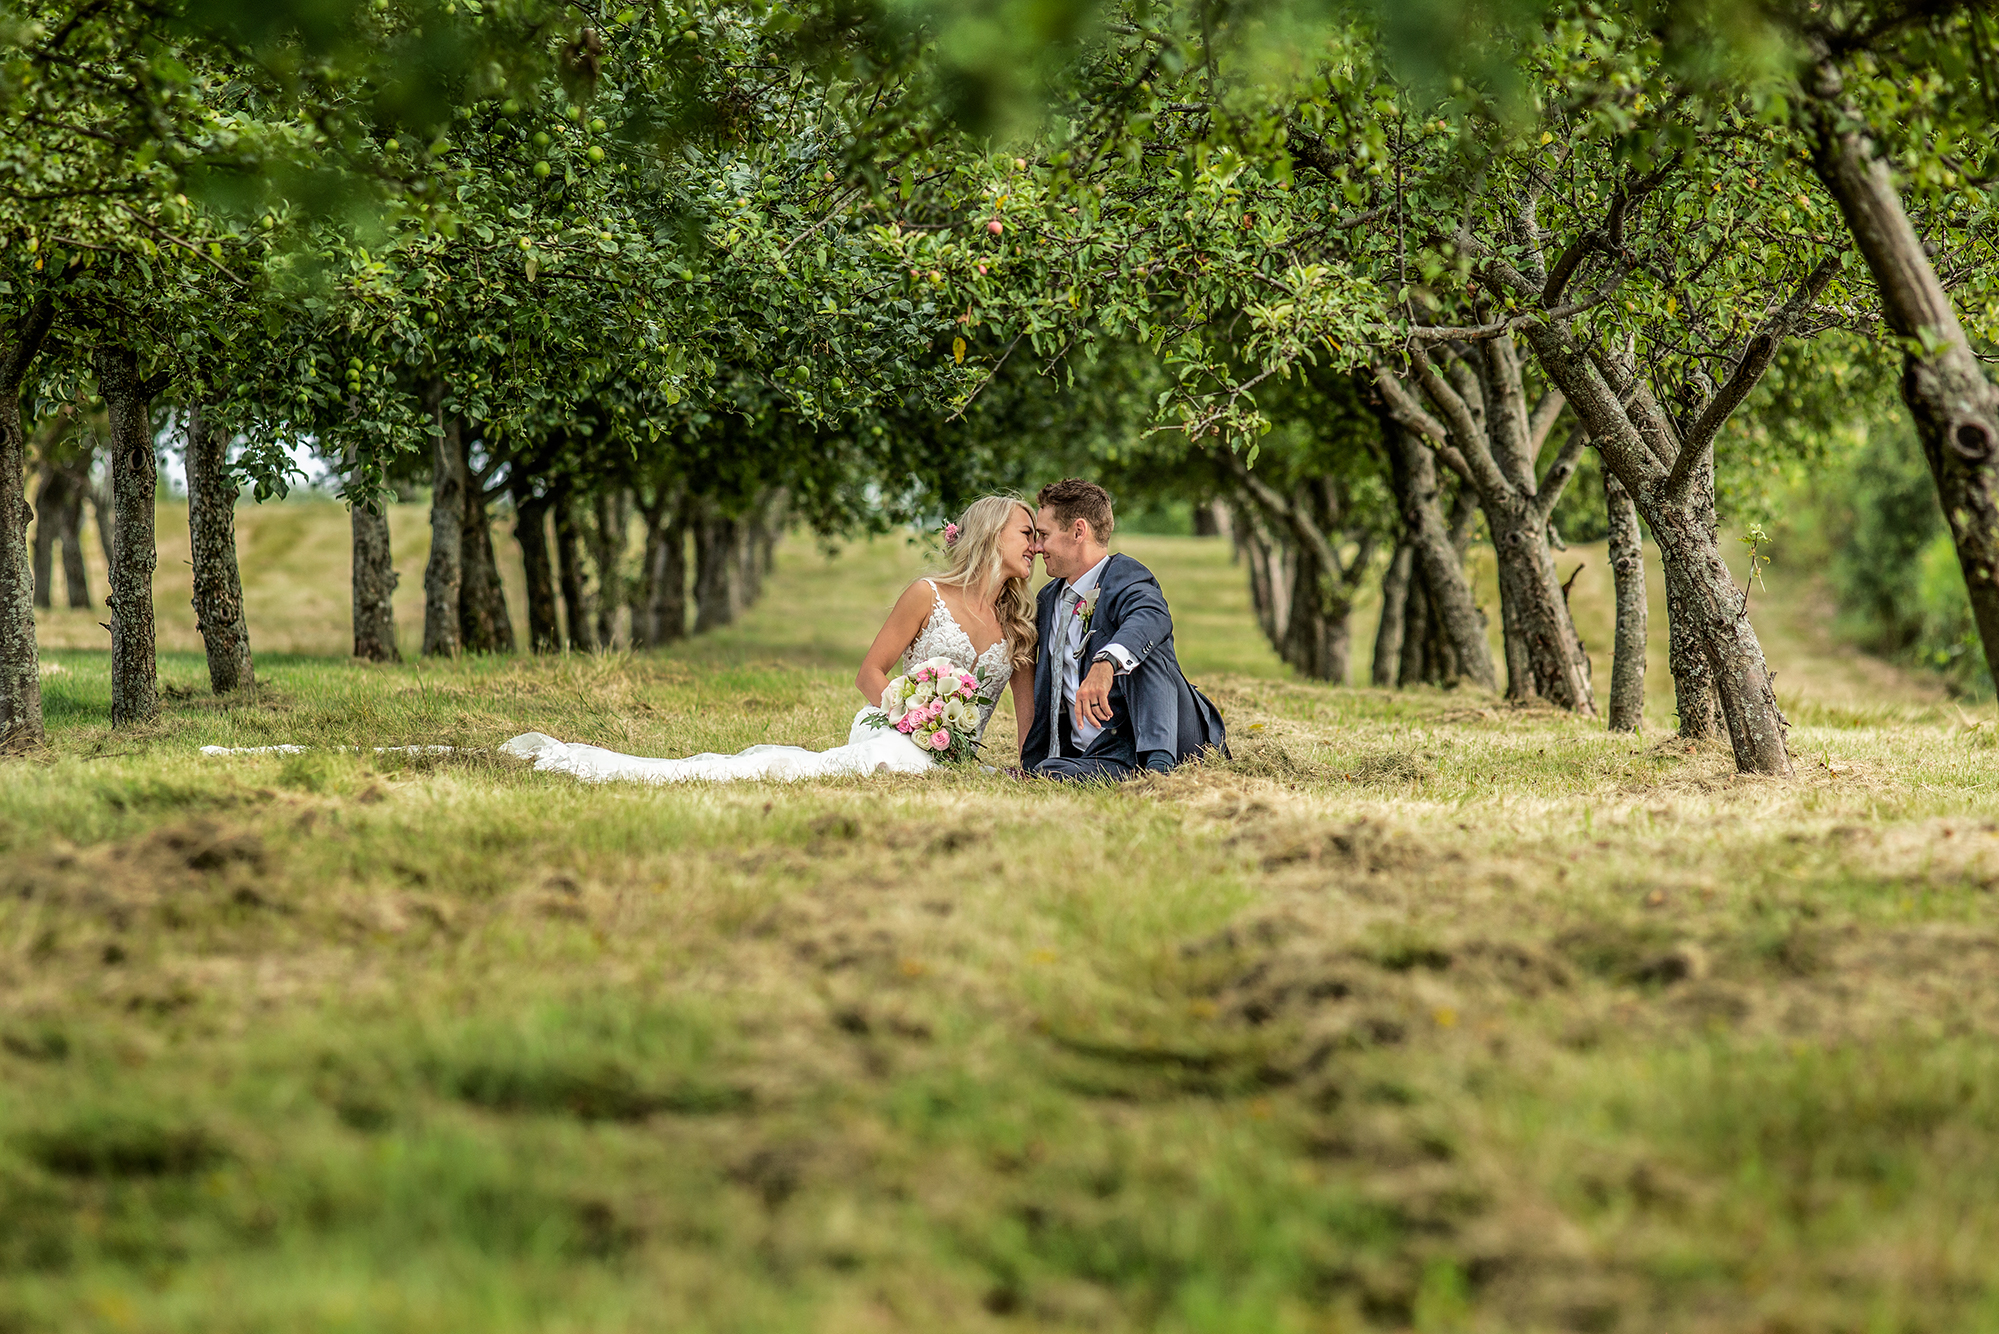 this amazing image shows off our wedding photography skills